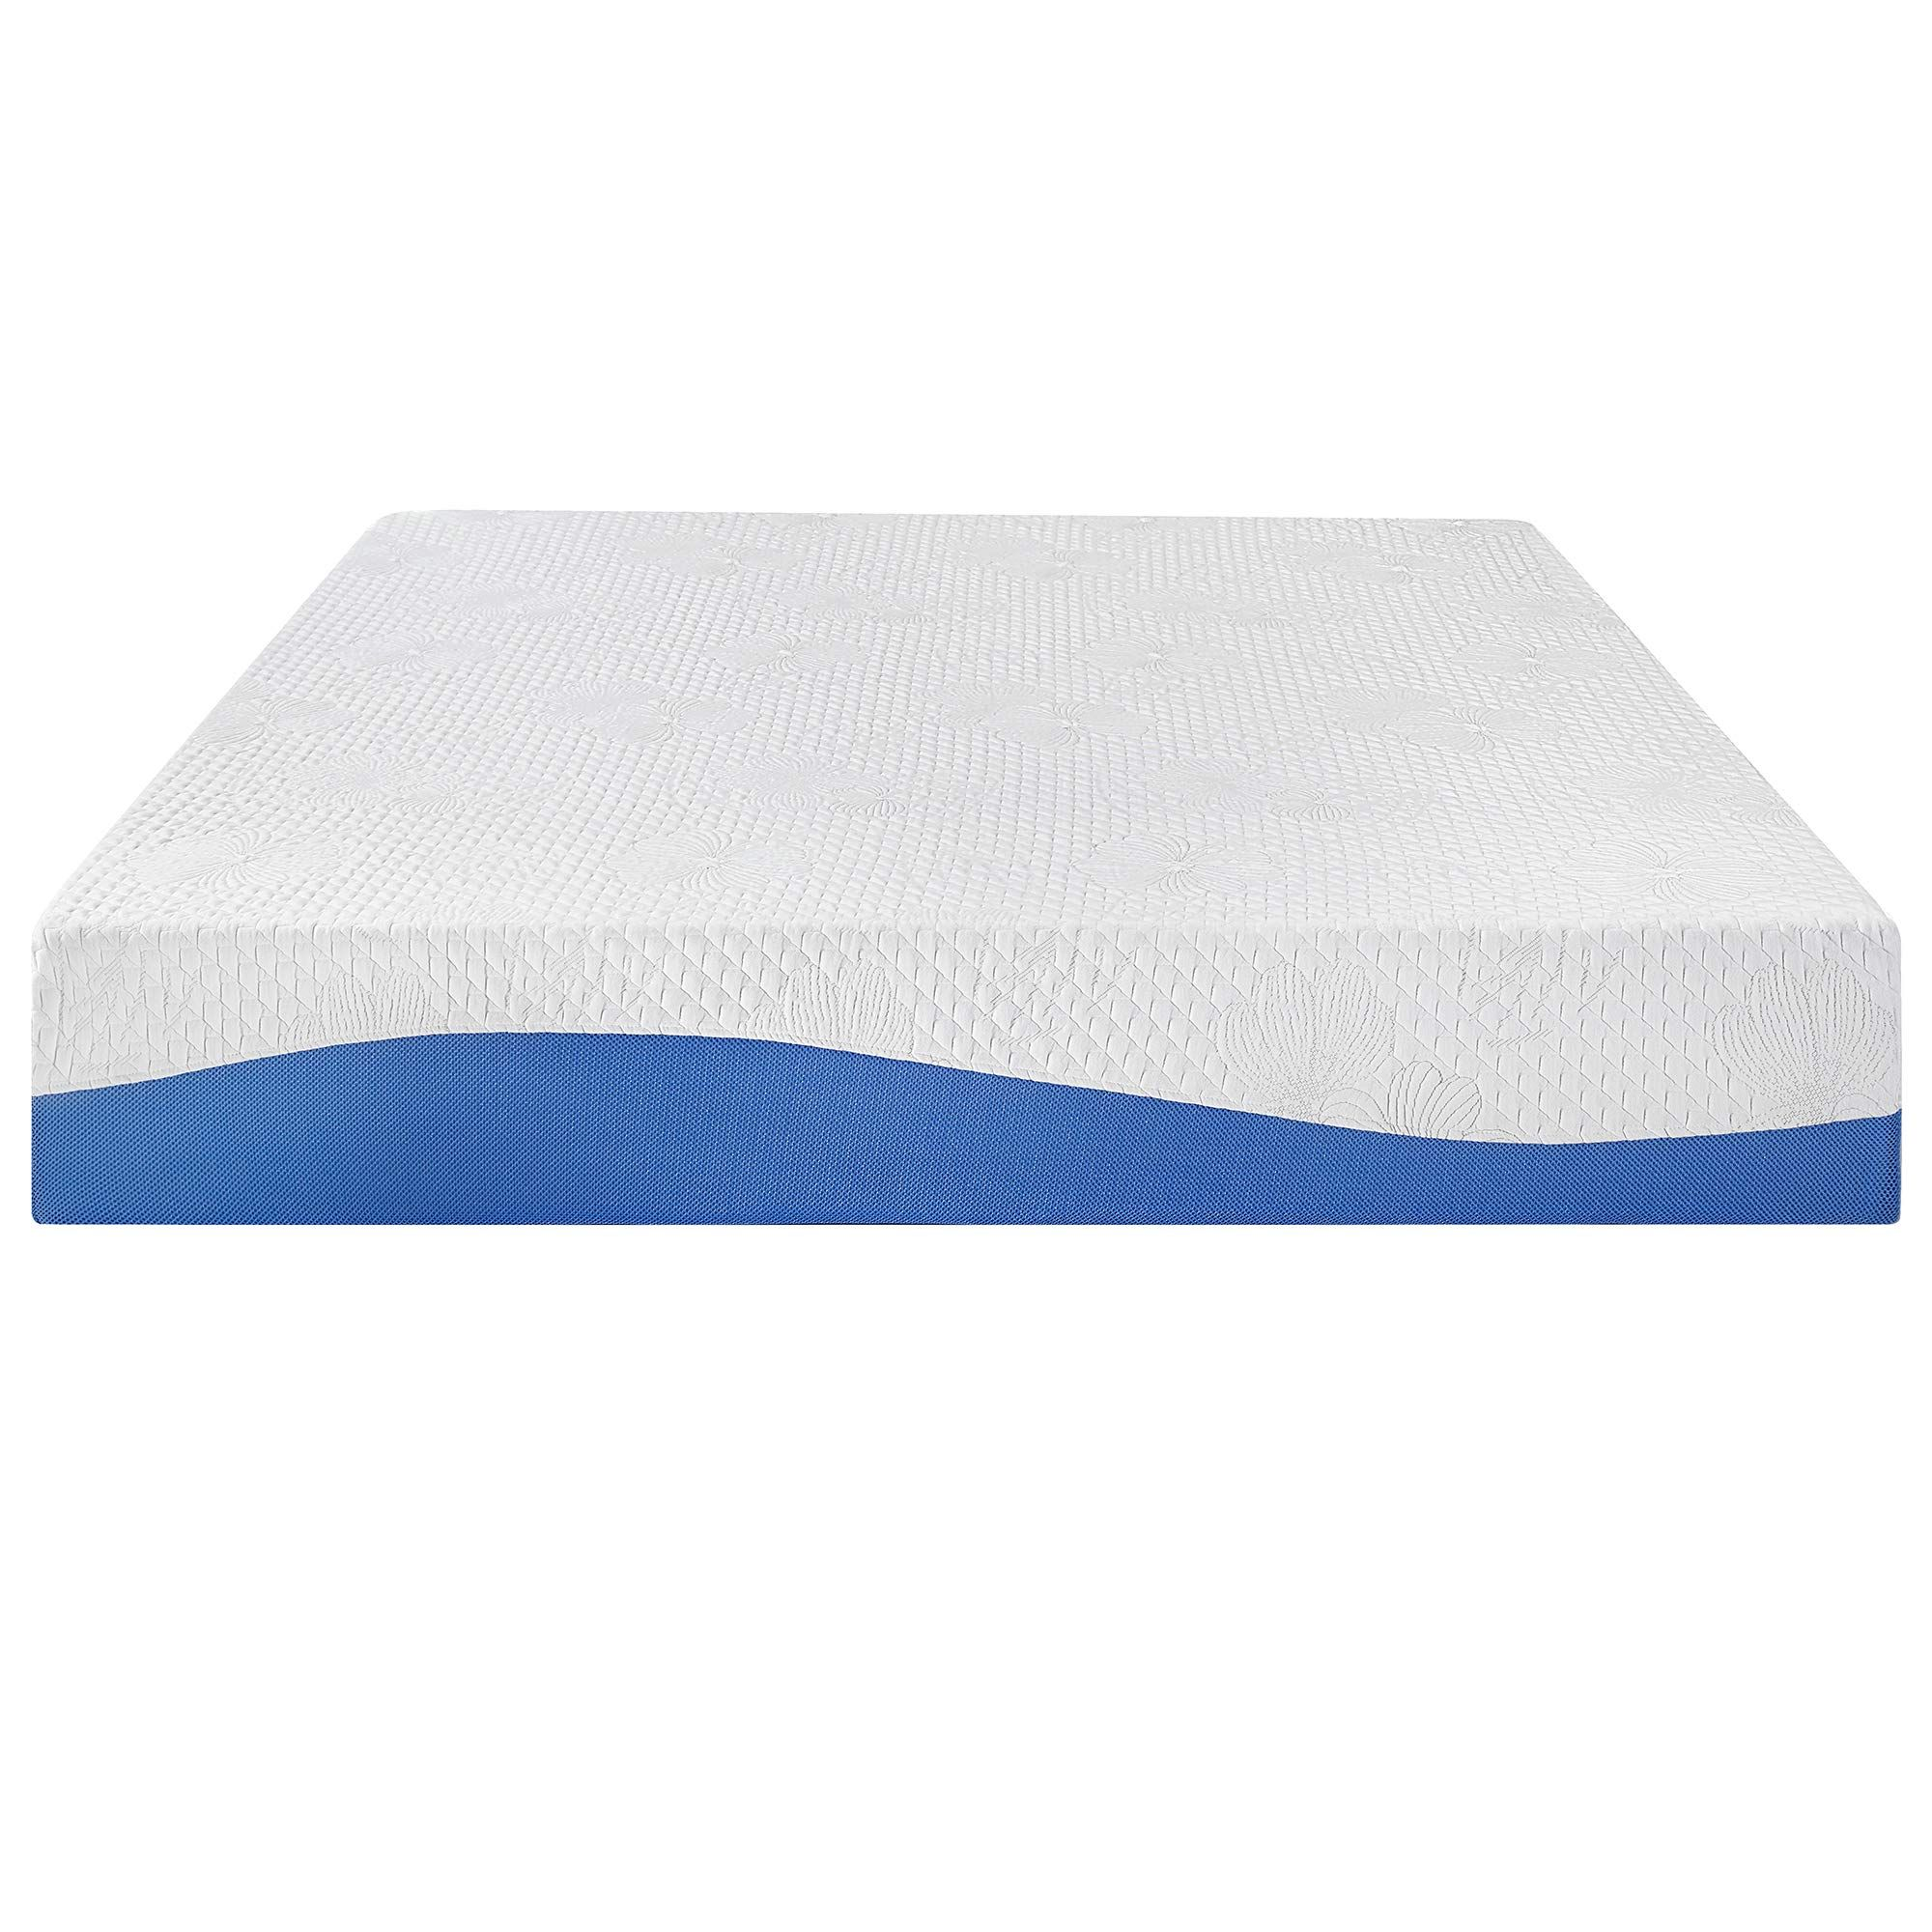 Olee Sleep 10 Inch Cool I Gel Infused Memory Foam Mattress Blue Full Be Sure To Check Out This Awesom Top Memory Foam Mattress Mattress Memory Foam Mattress